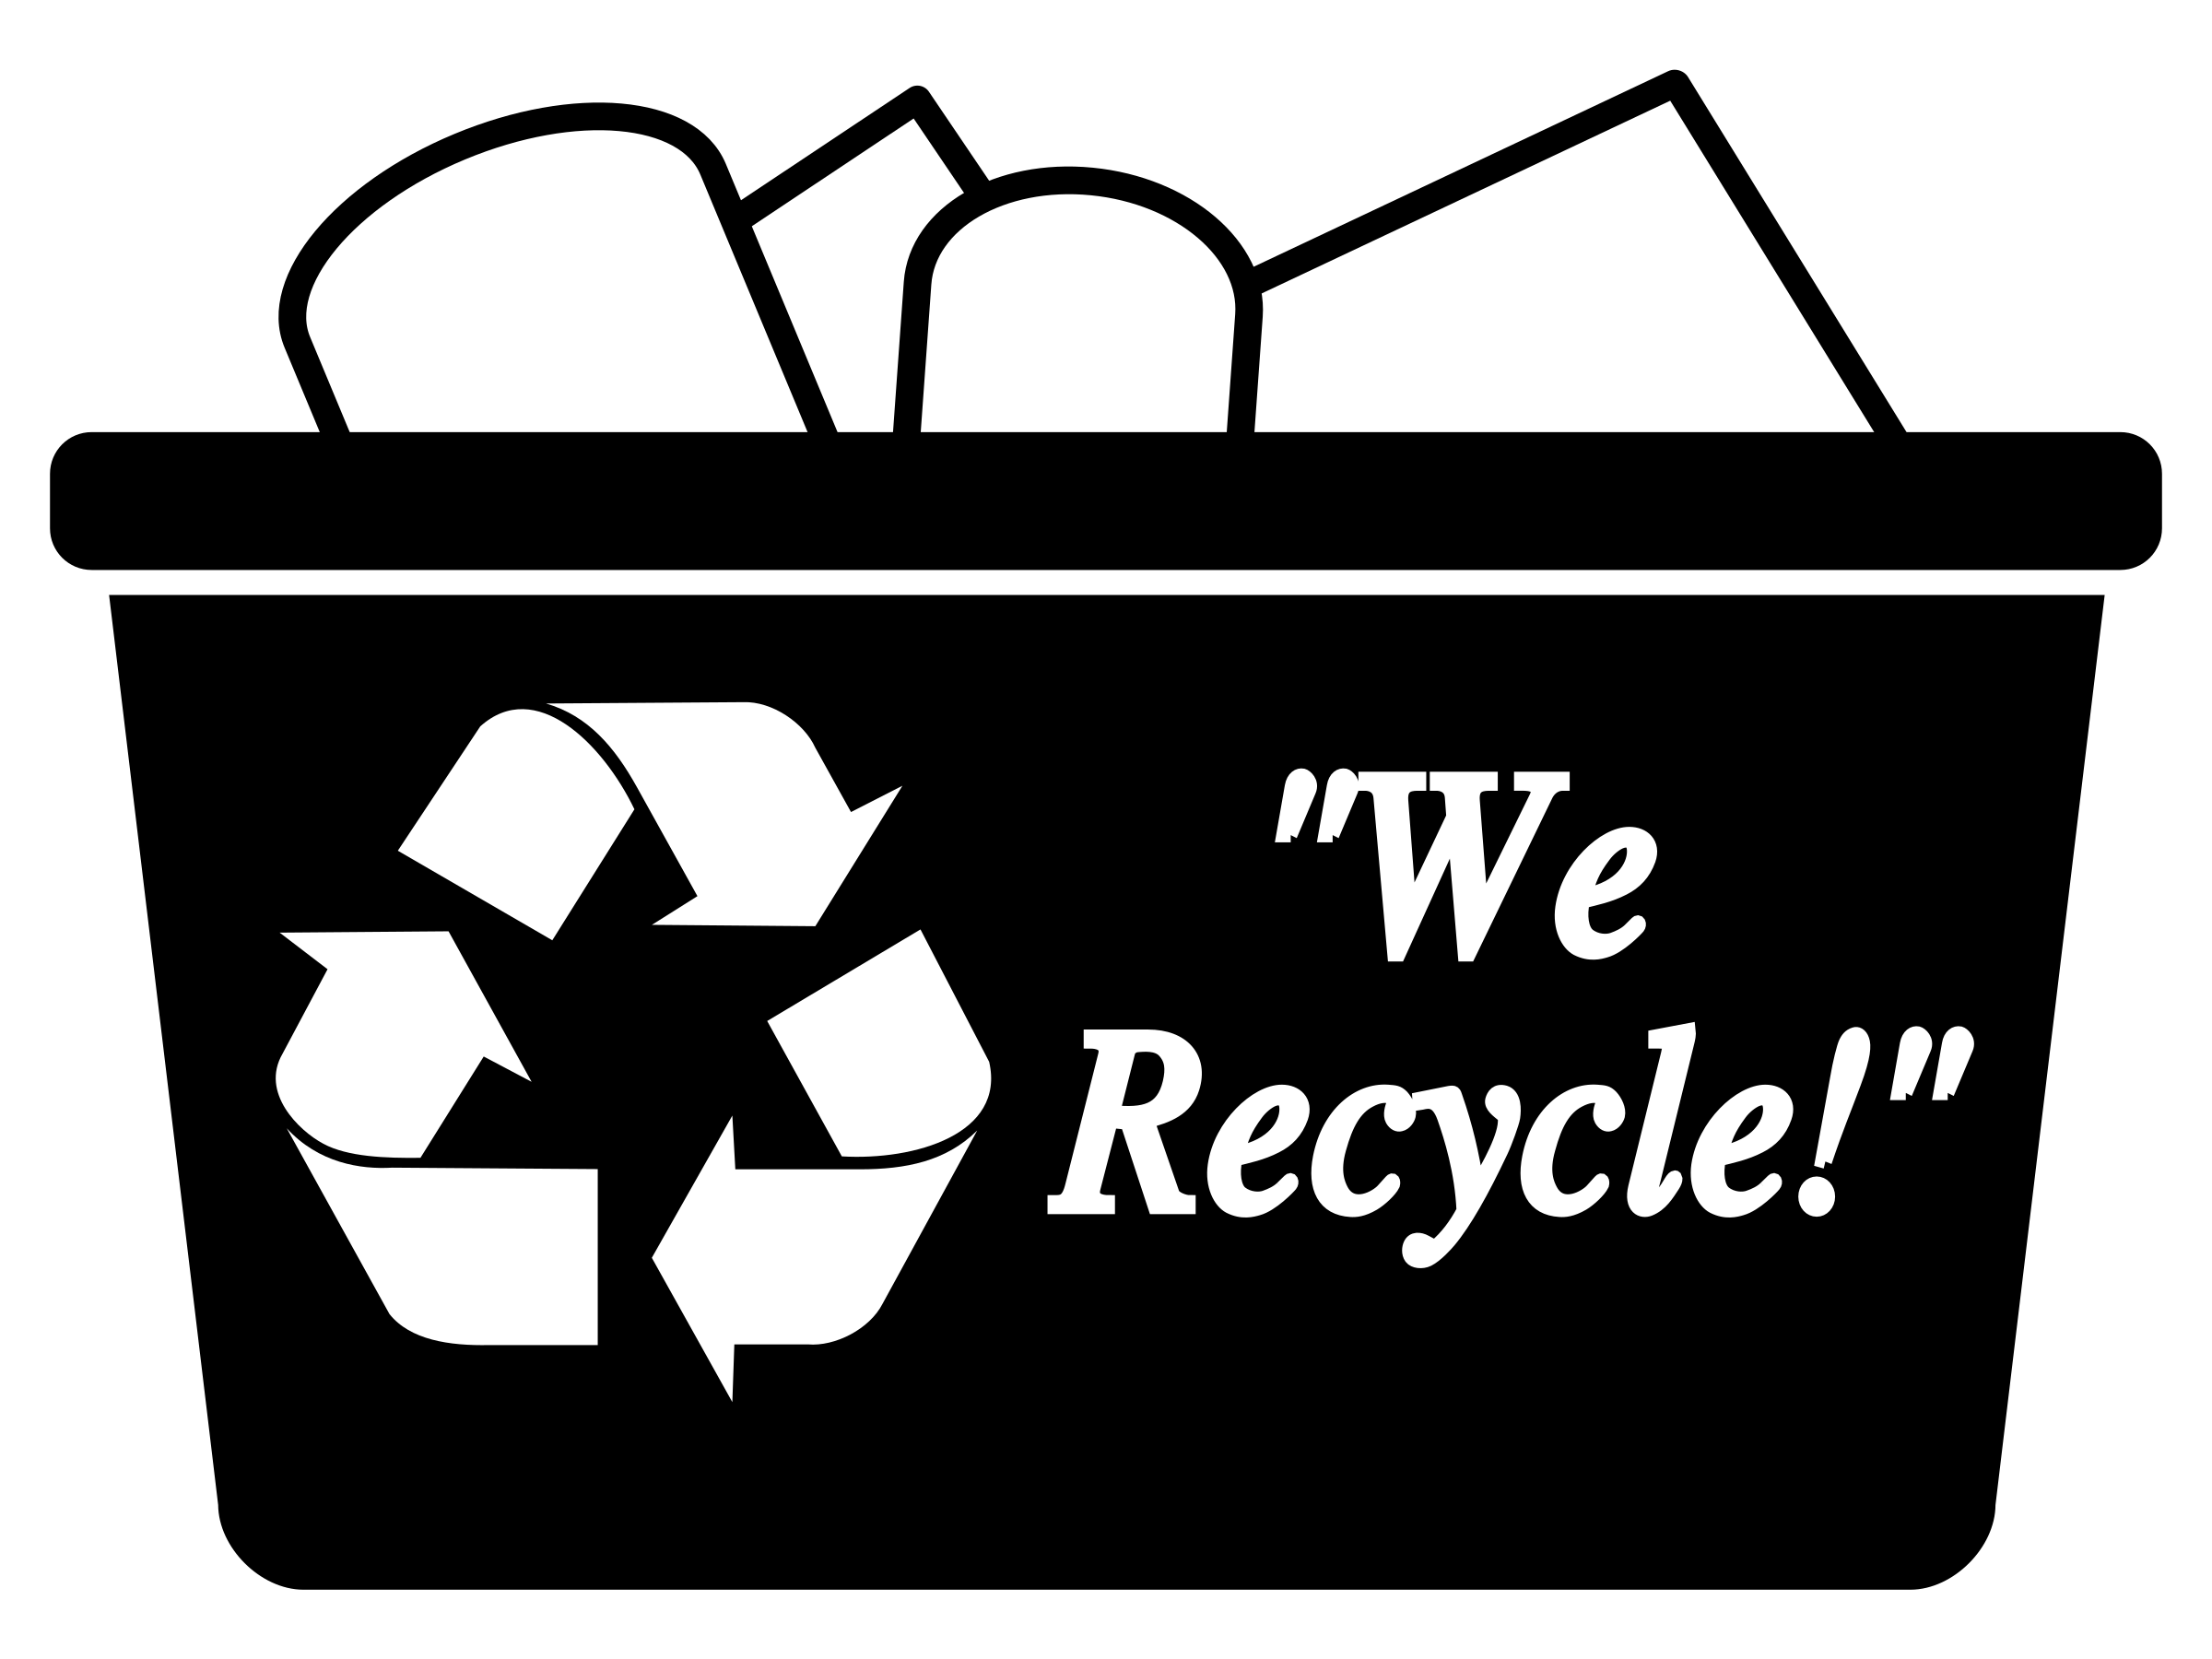 Recycling bin simple icons. Newspaper clipart recycled paper